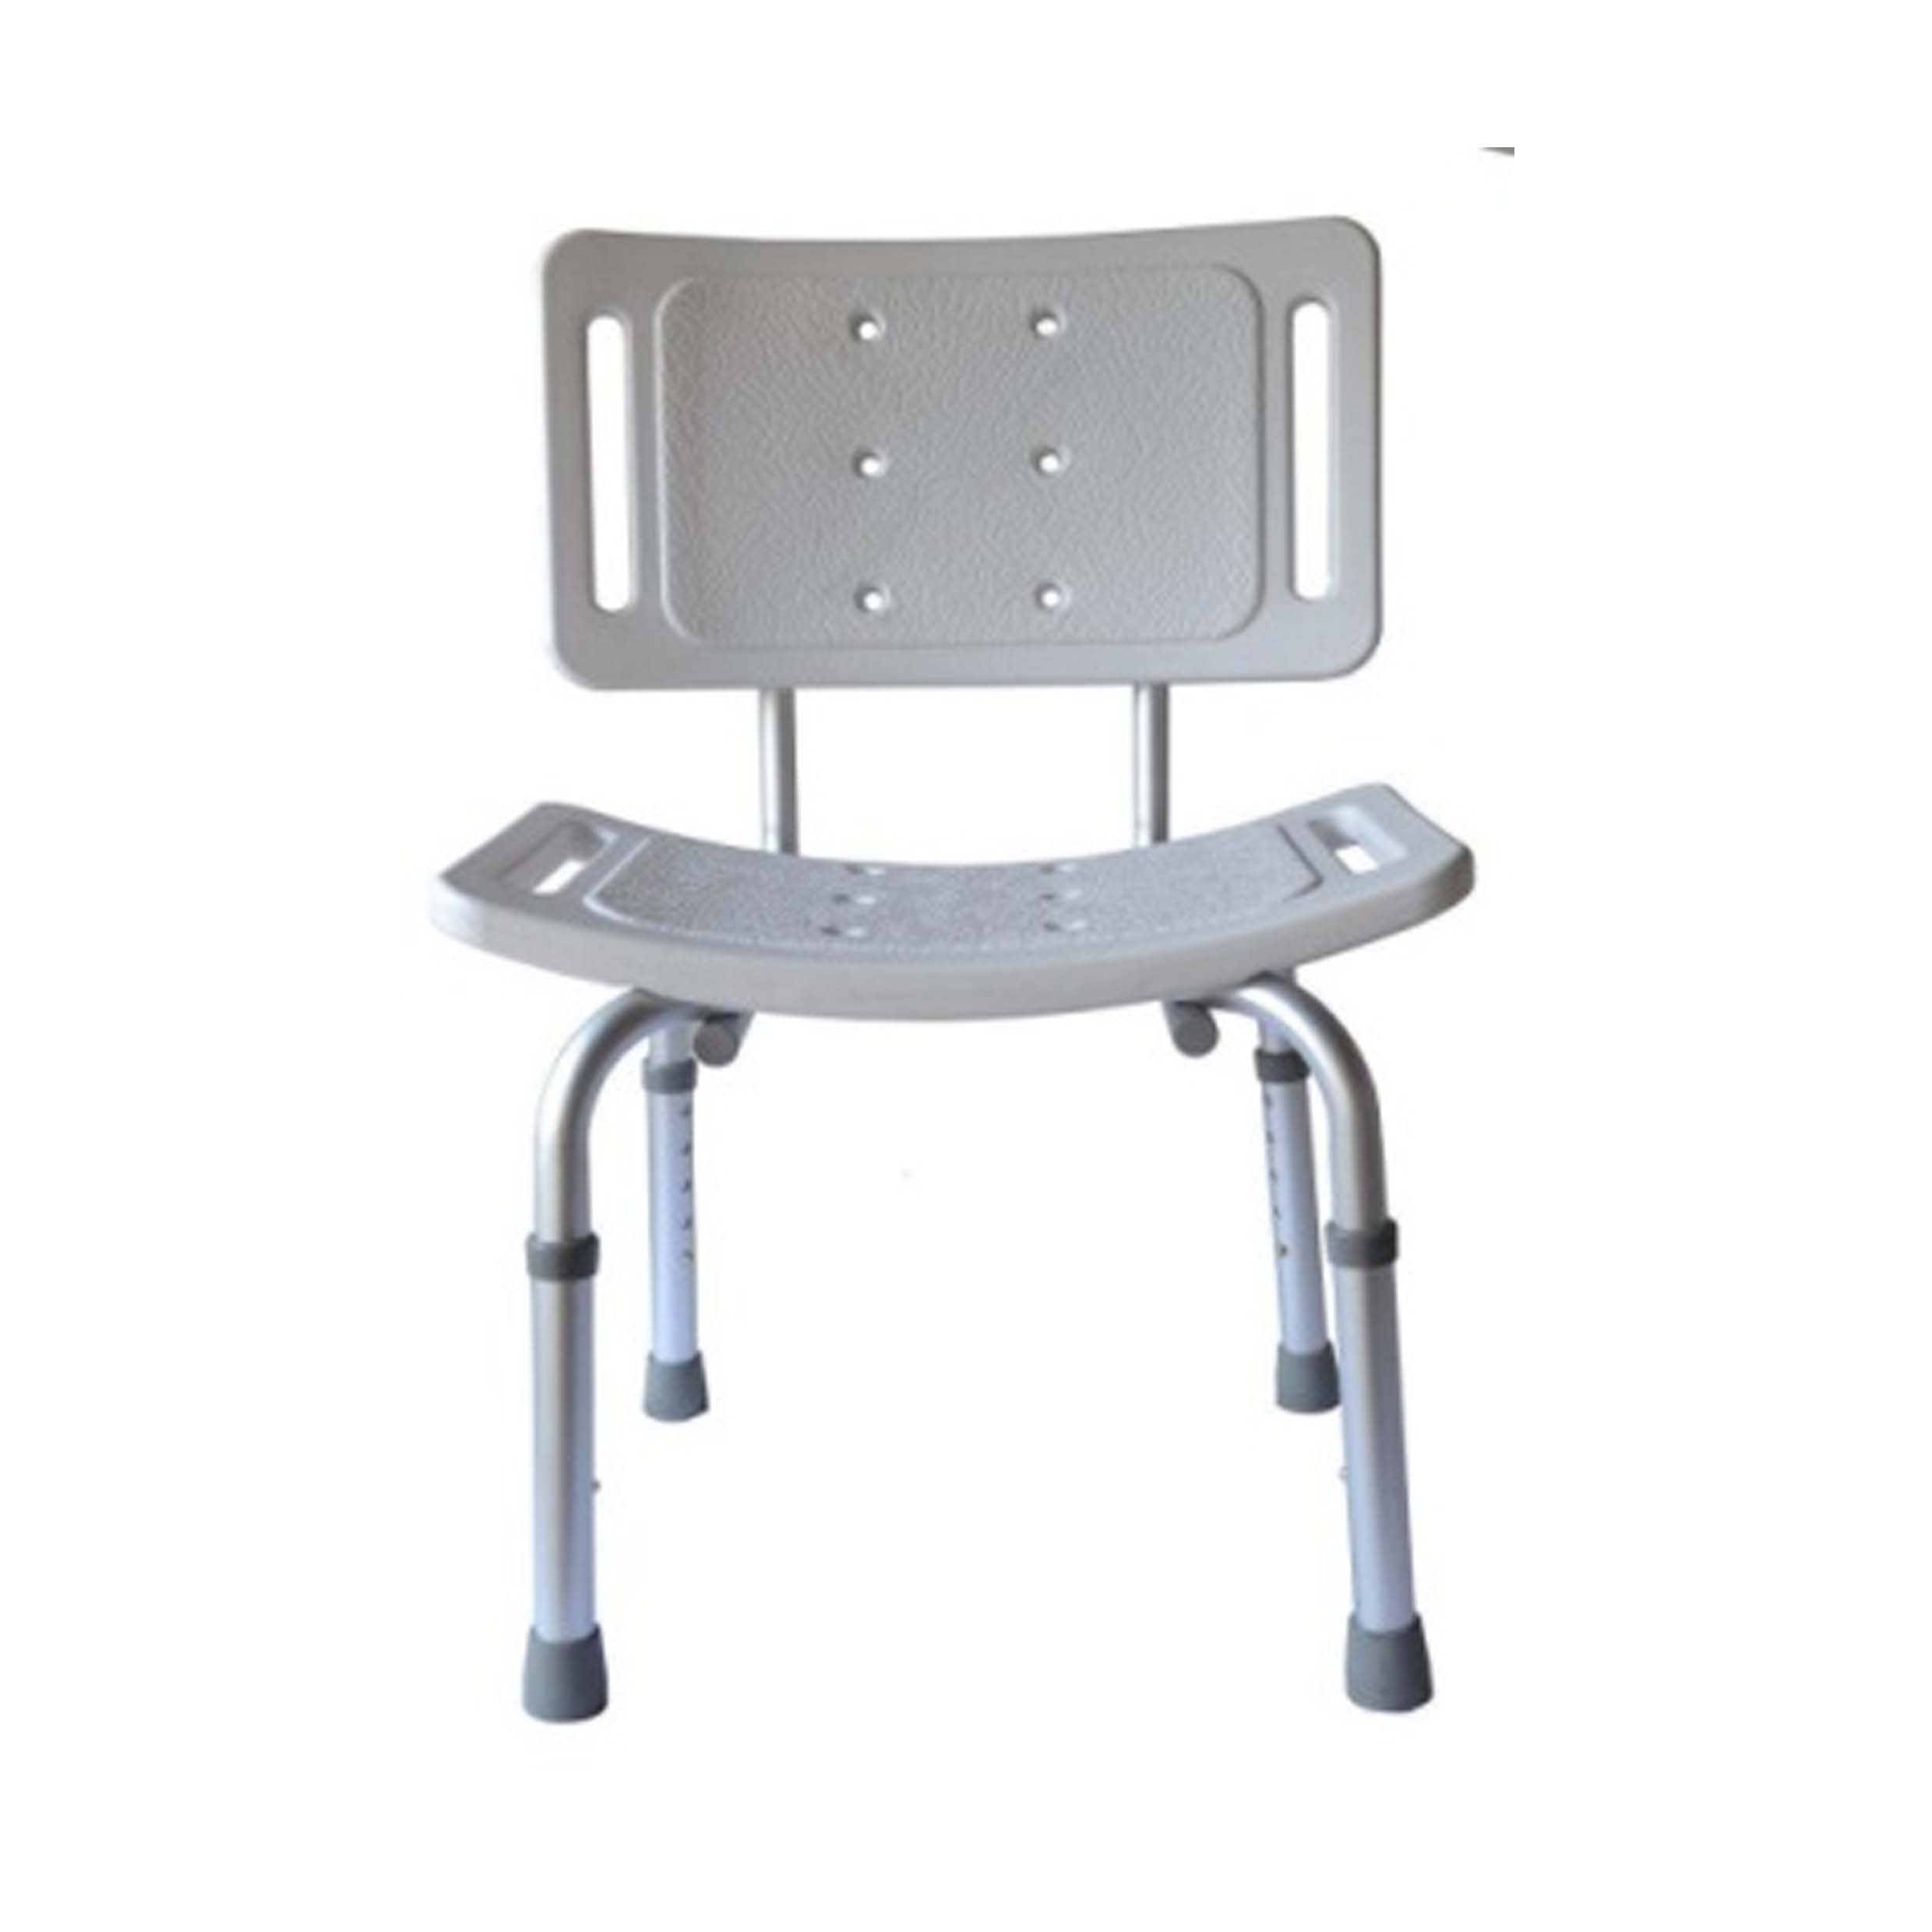 gray bathroom tub en bench safety shower chair product